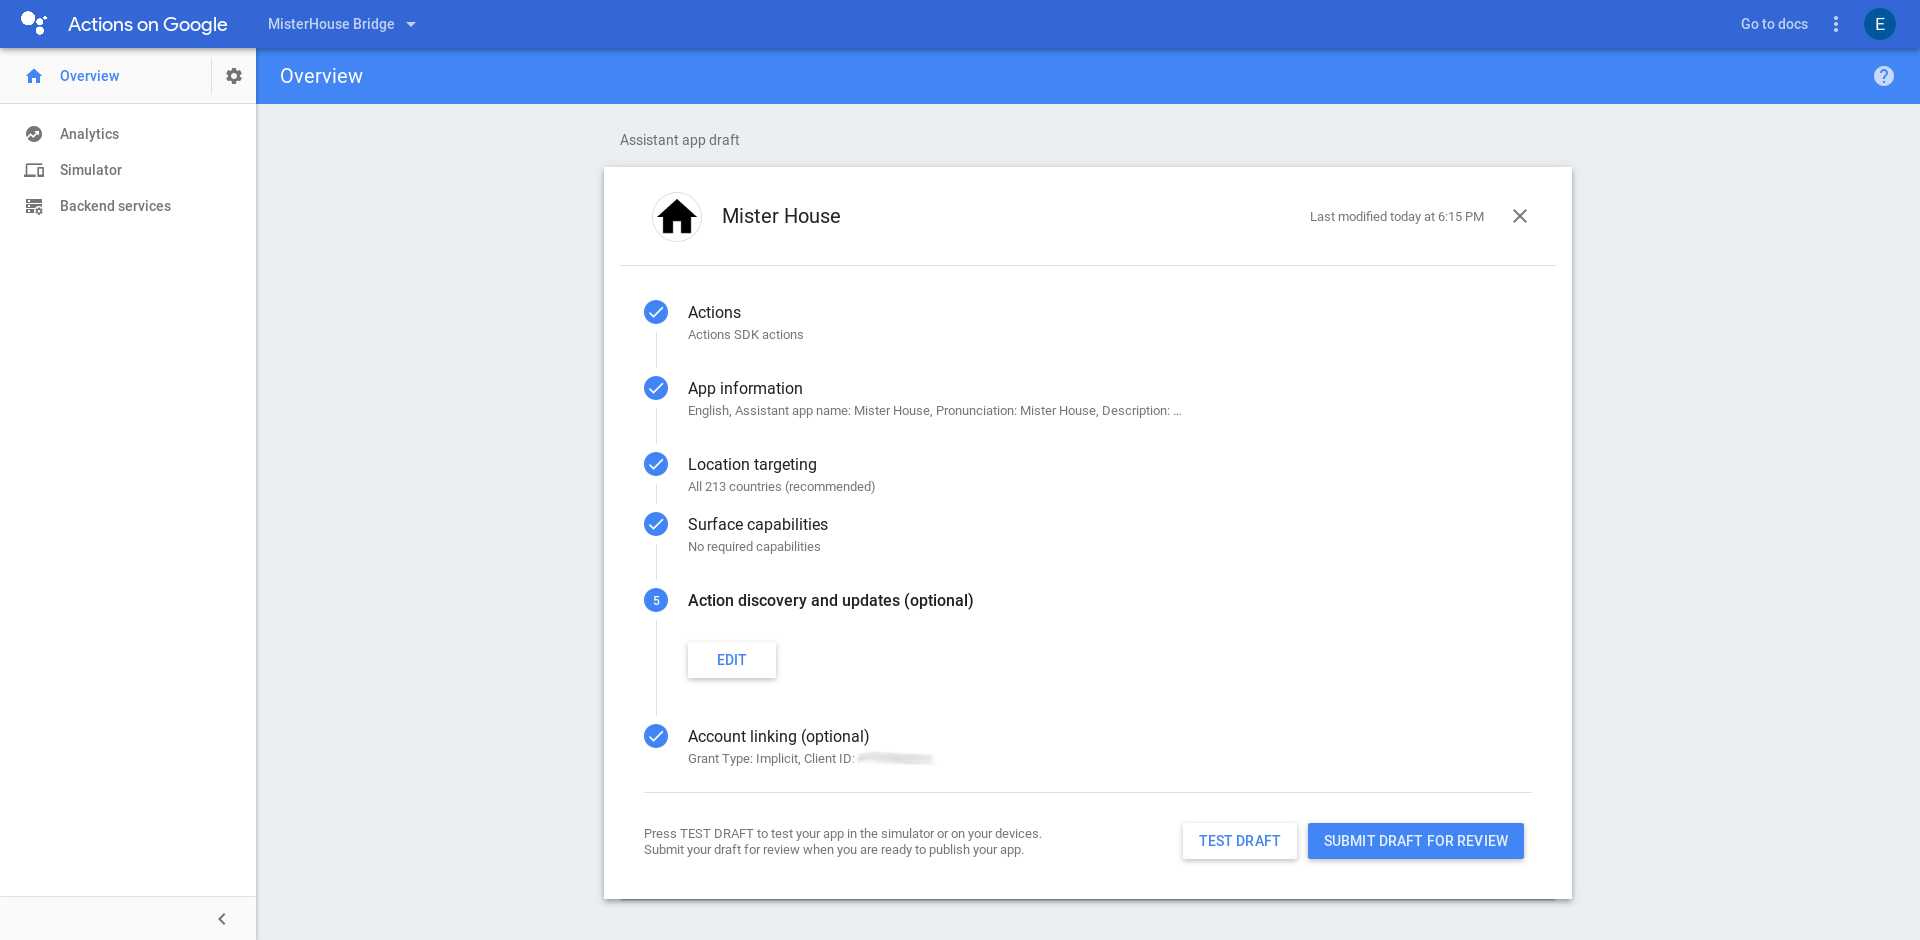 Integration With The Actions on Google Smart Home Provider